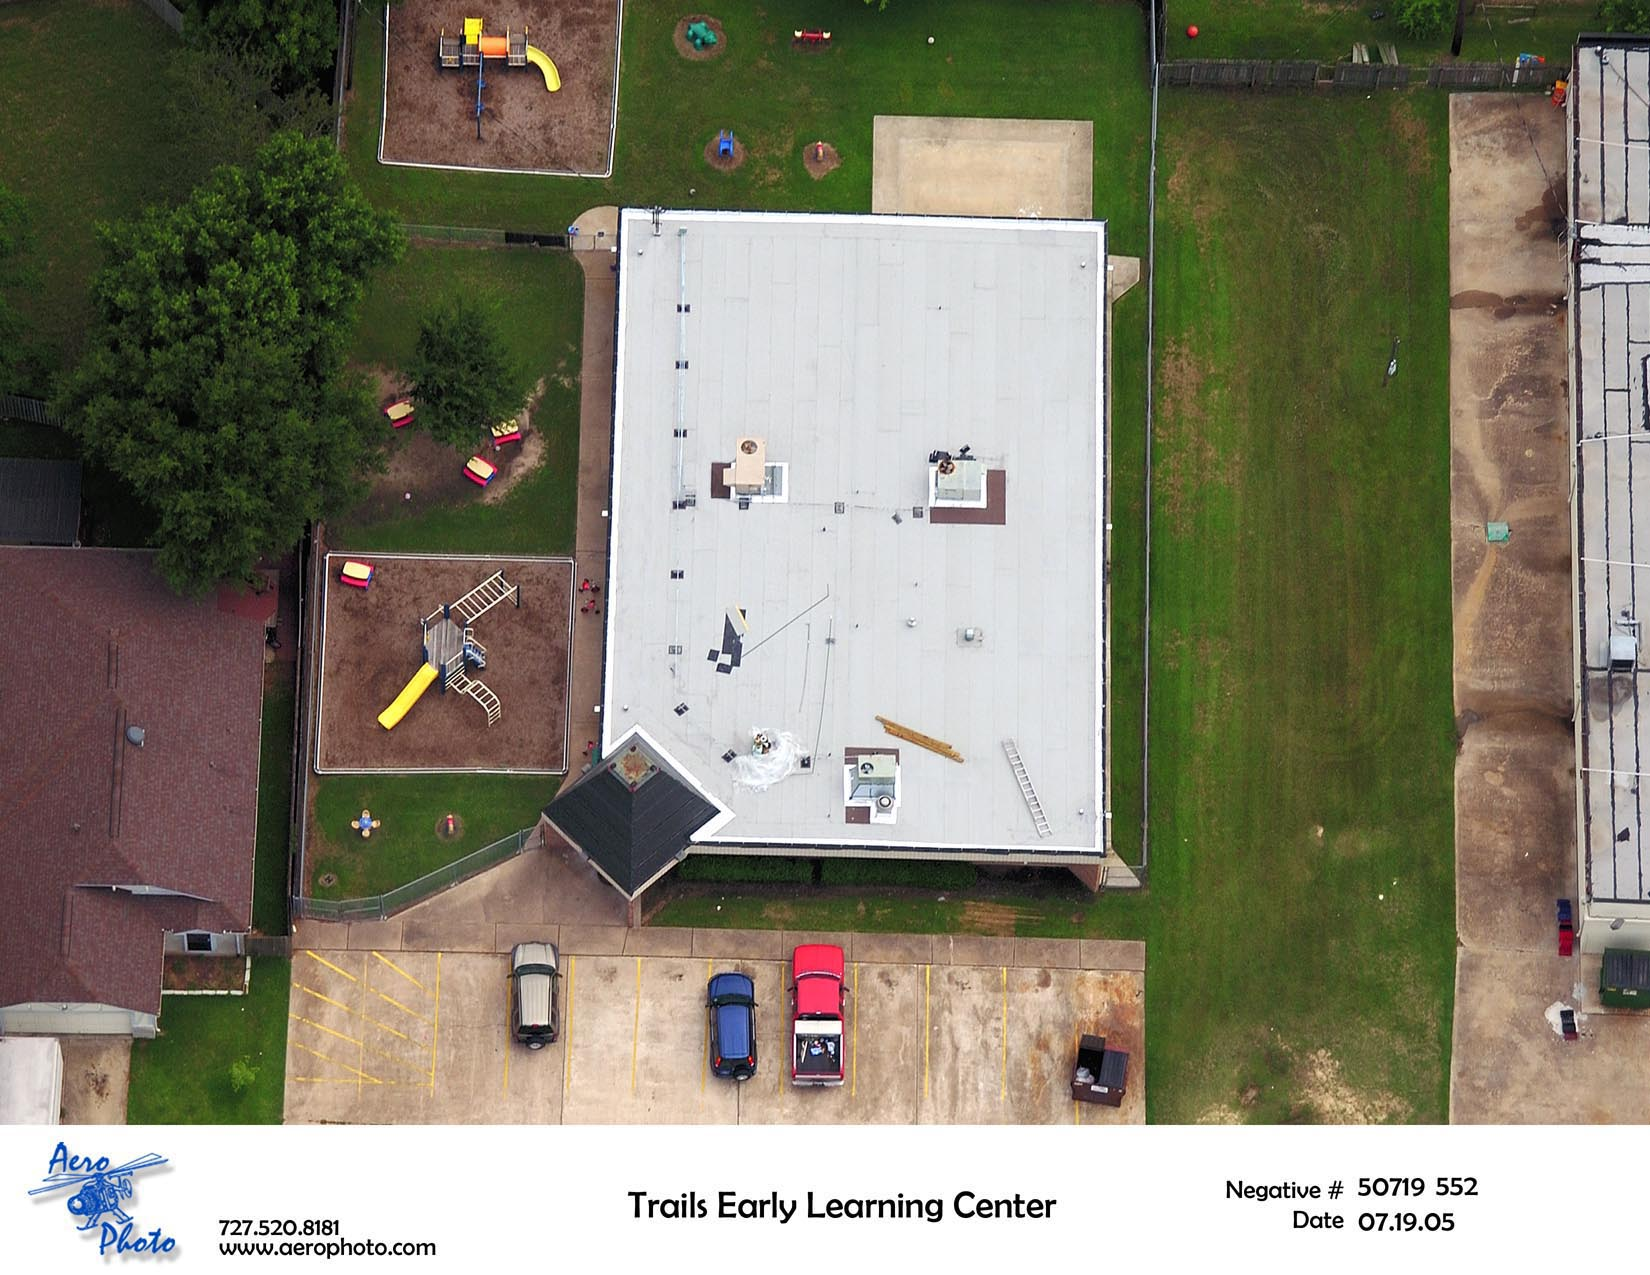 Trails Early Learning Center